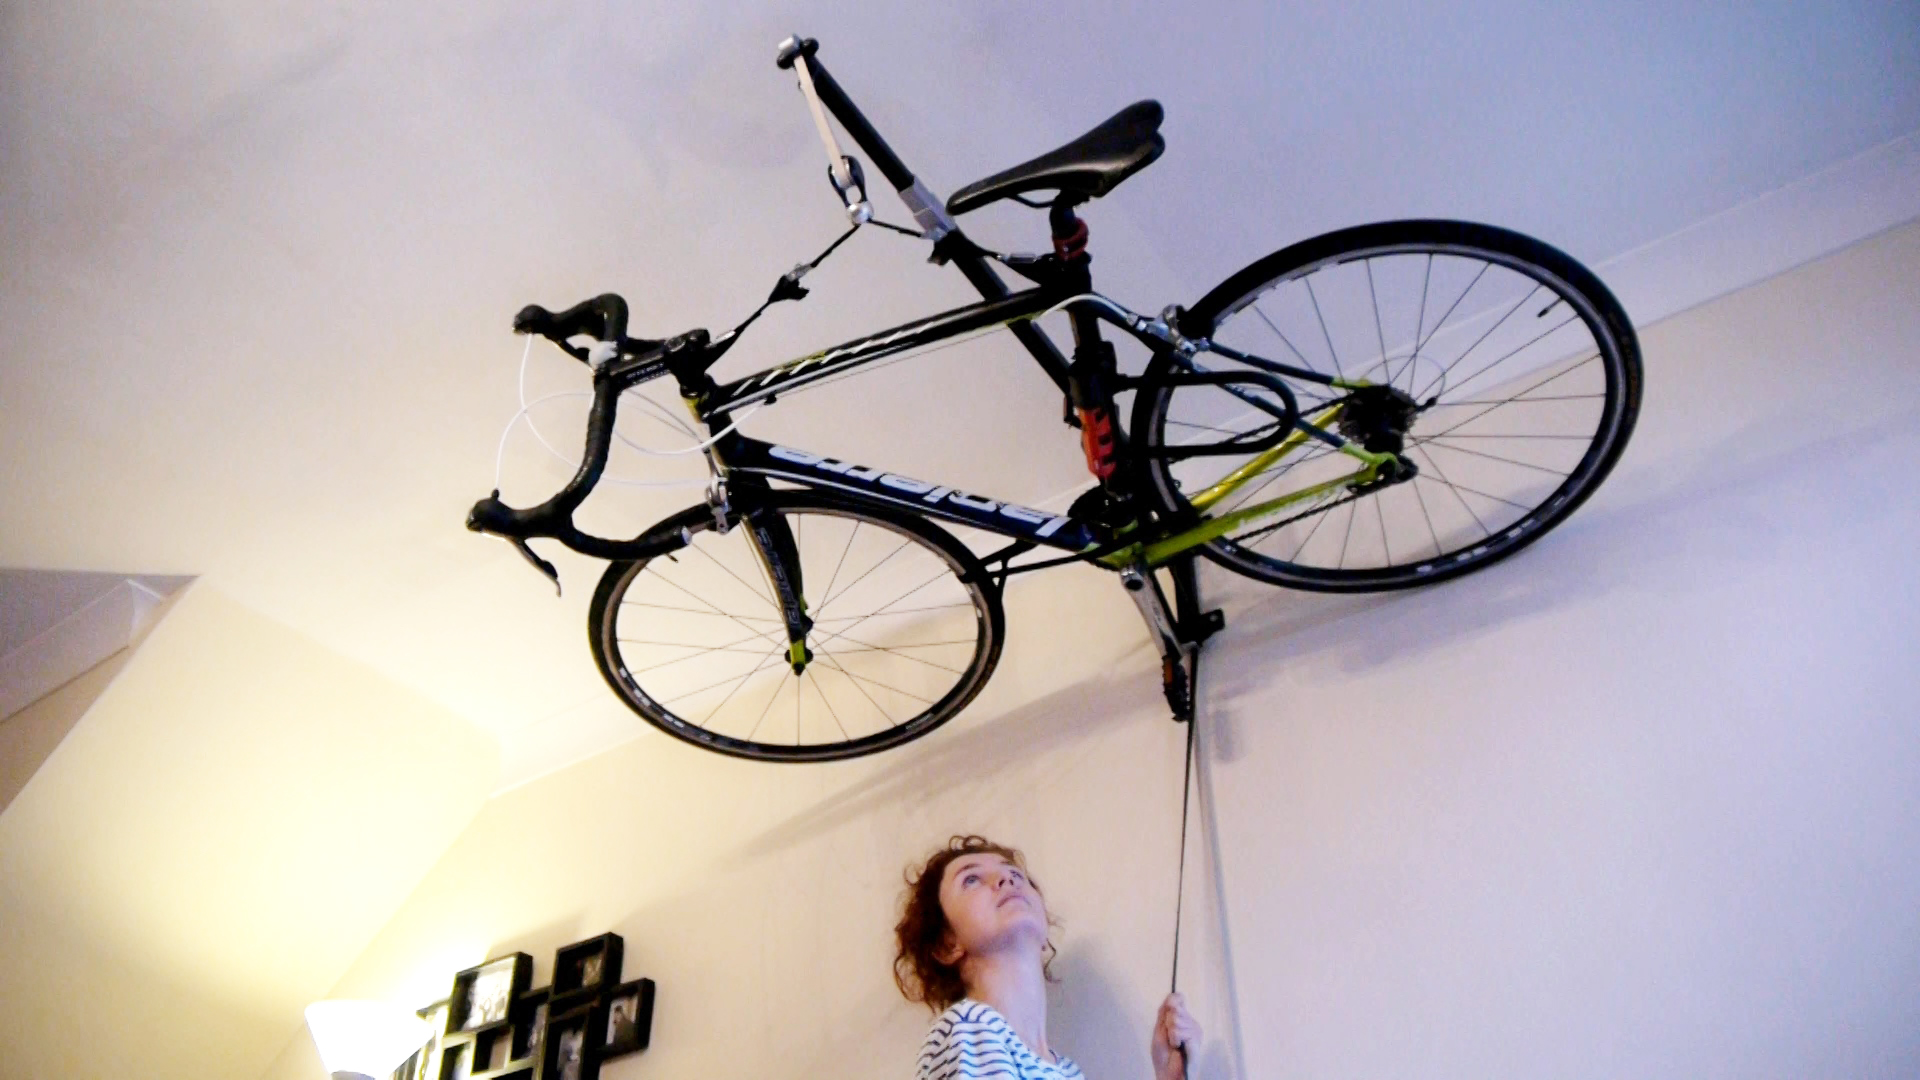 Bike storage you can look floor mounted bike stand you can look mountain bike rack for garage you can look best bicycle stand